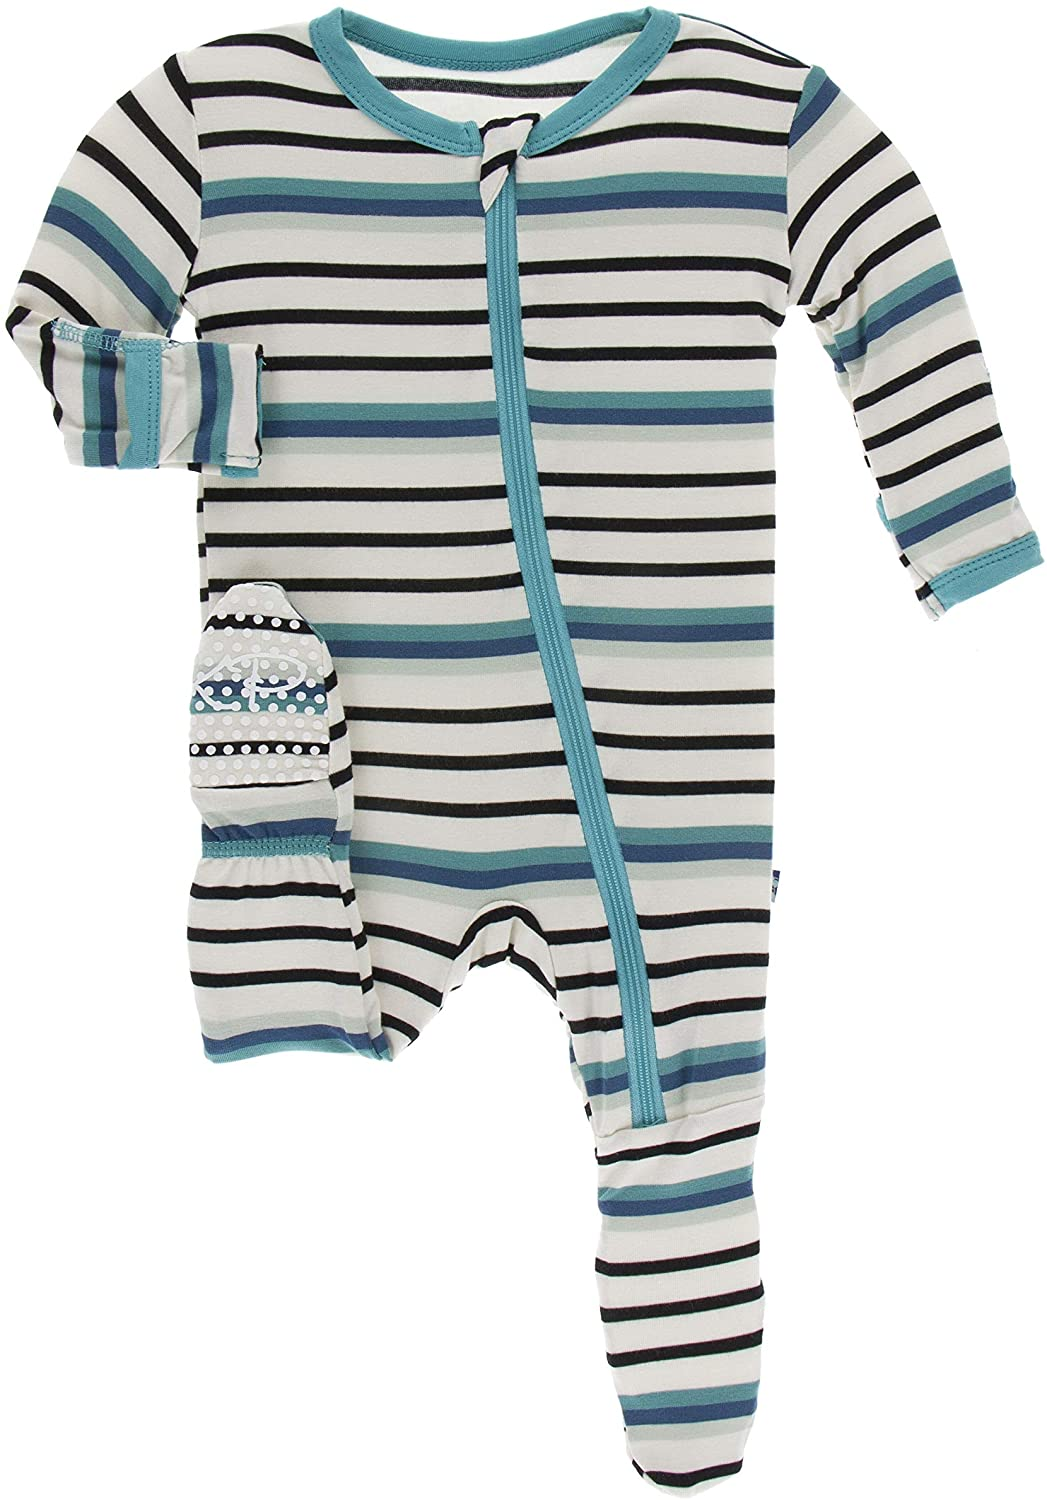 KicKee Pants Print Footie with Zipper (12-18 Months, Neptune Stripe)